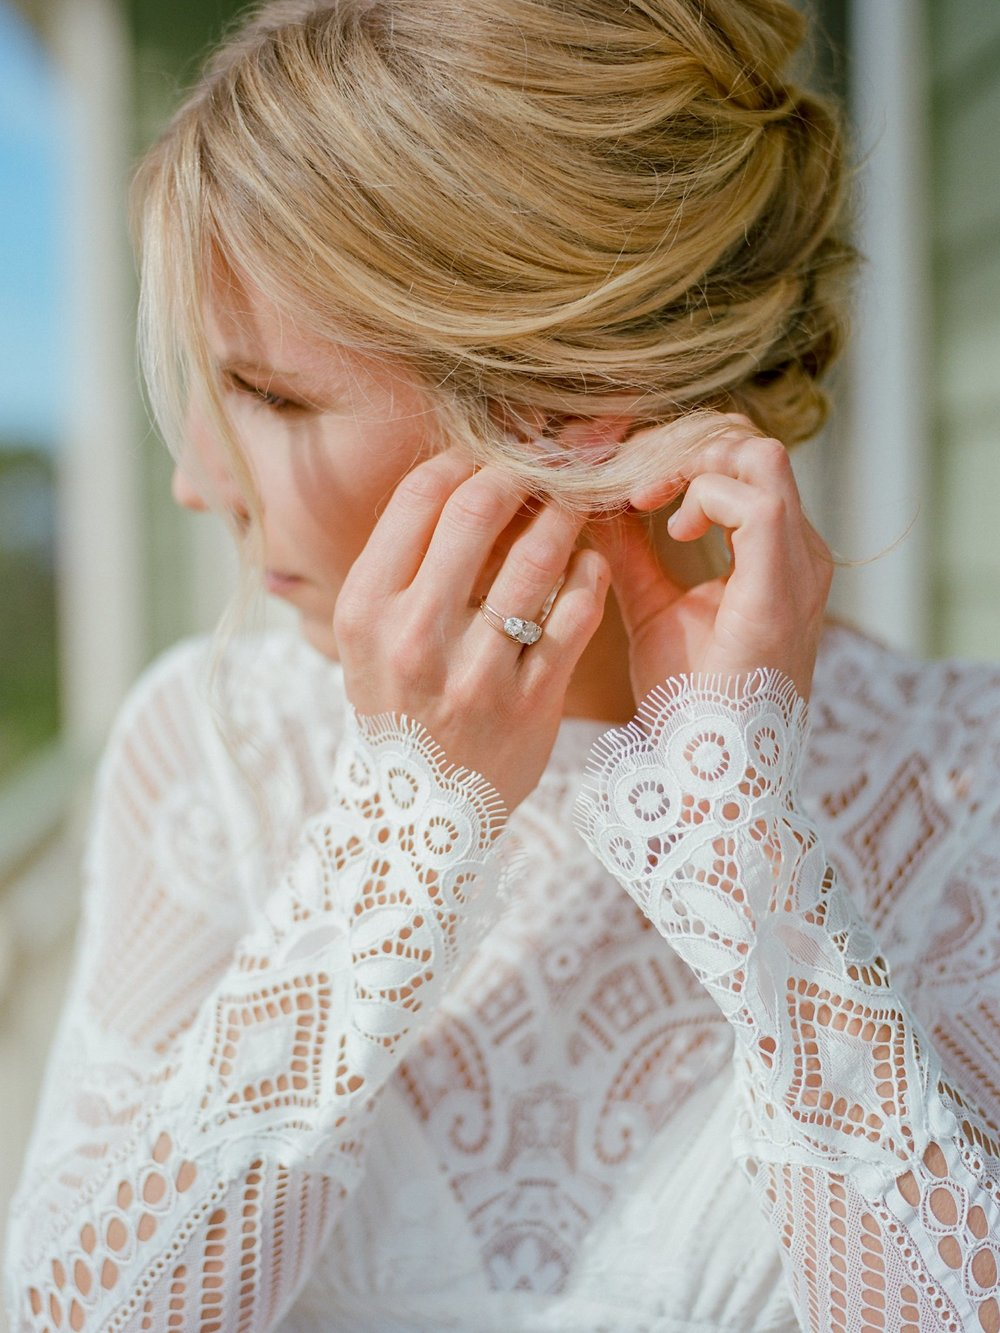 st george island wedding st george island photographer shannon griffin photography_0046.jpg